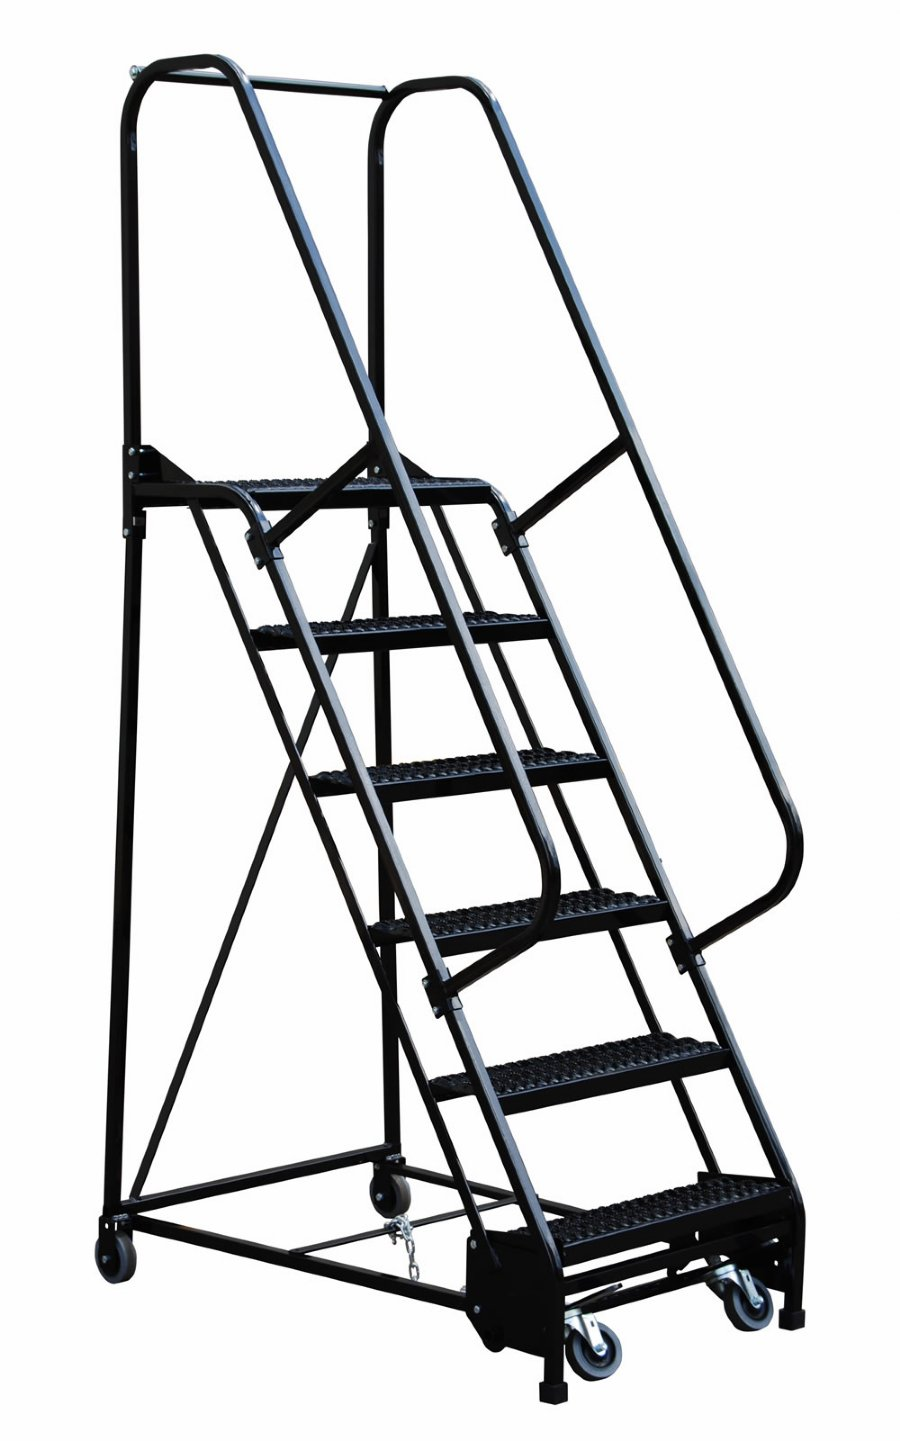 8 Step Esd Safe Portable Warehouse Ladder 8 Step Esd Safe